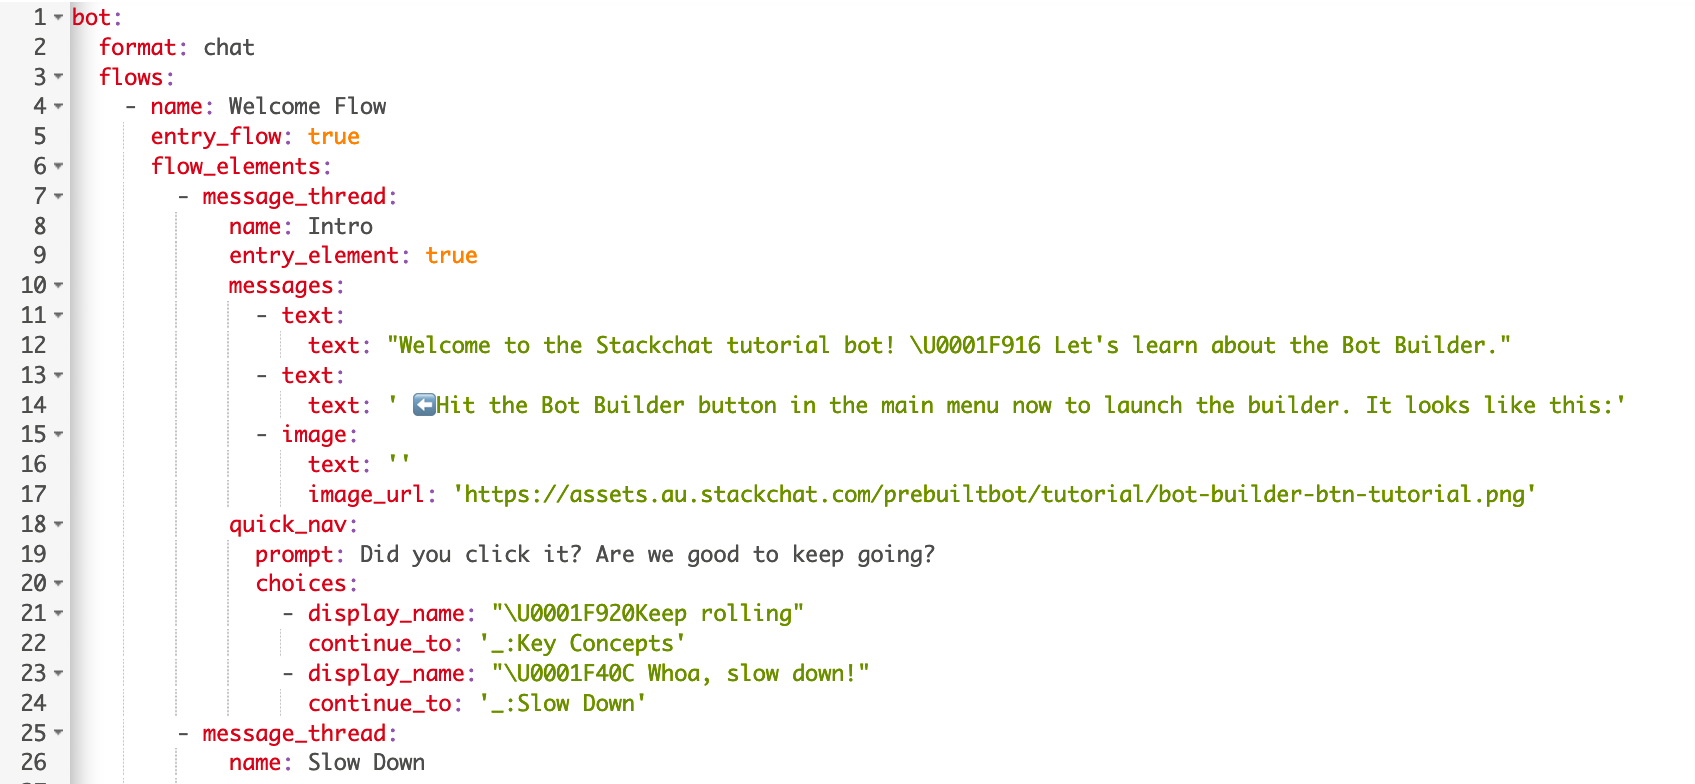 Sample CDML from the Stackchat Studio tutorial bot.